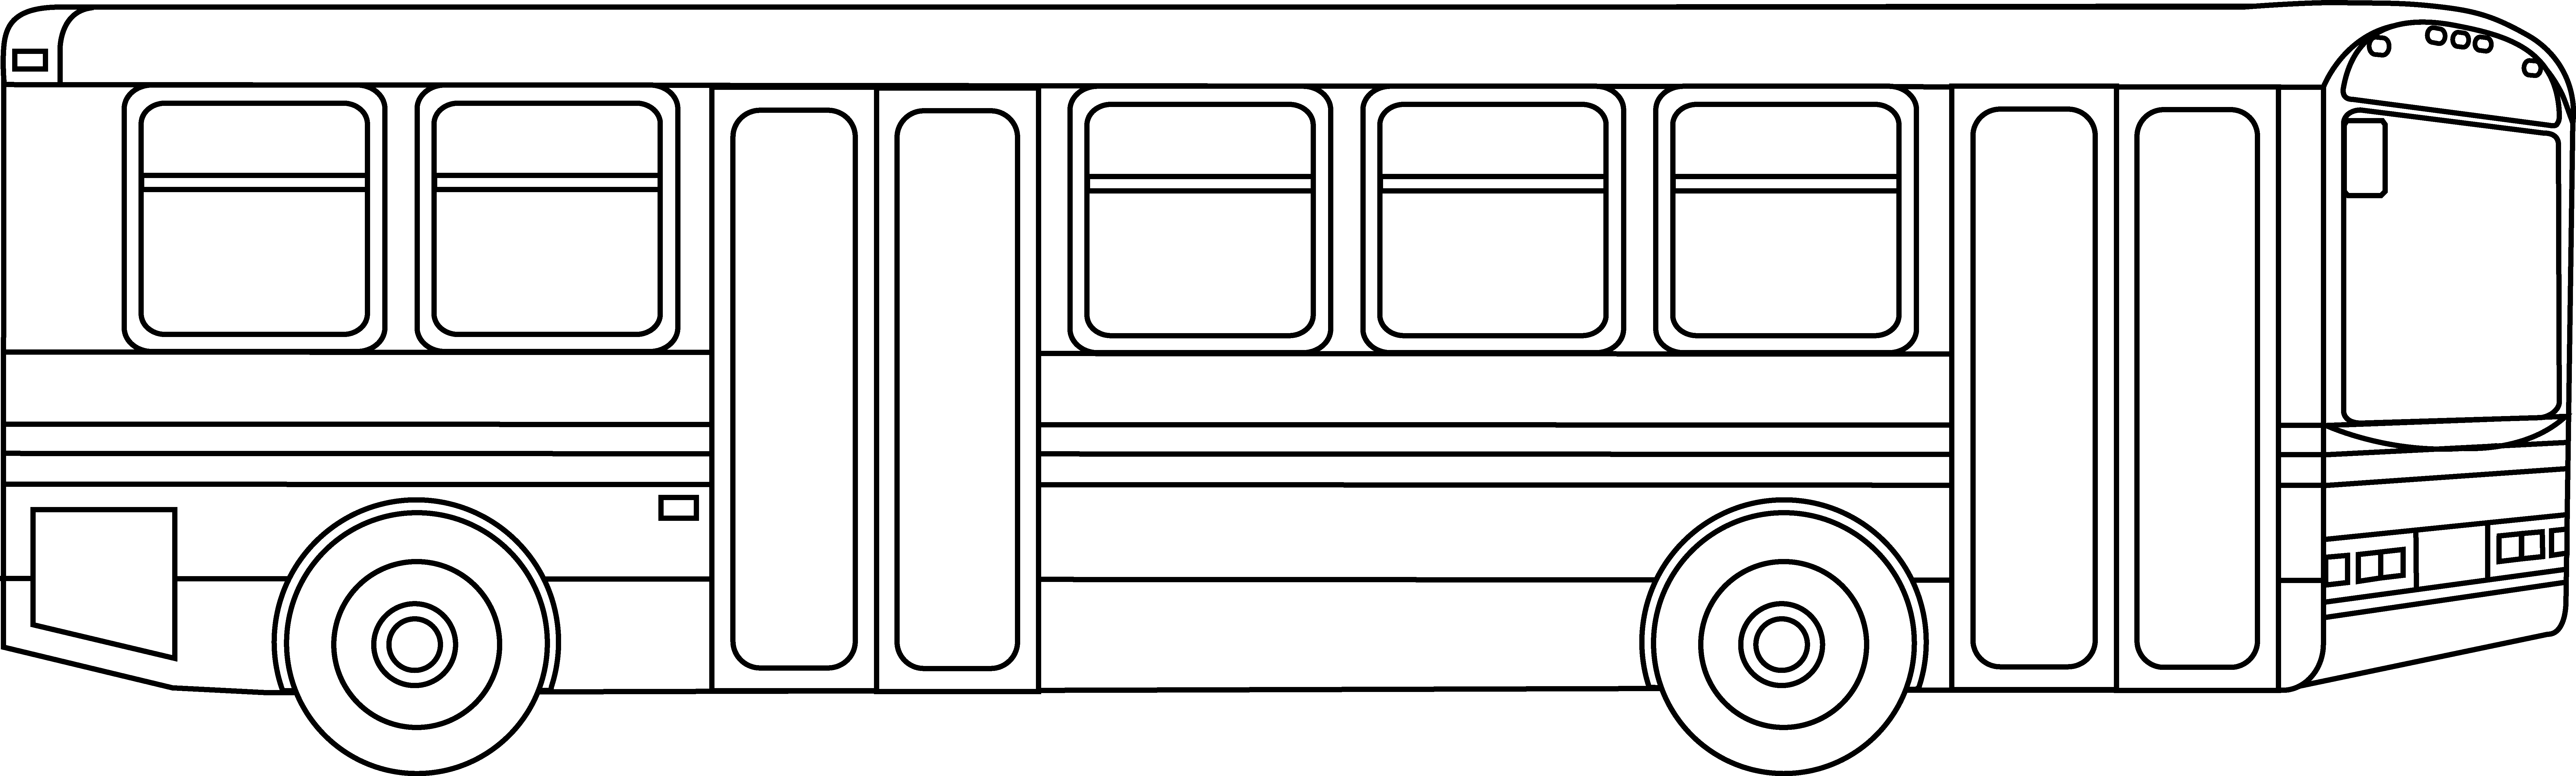 Line Drawing Bus : Outline of bus clipart best